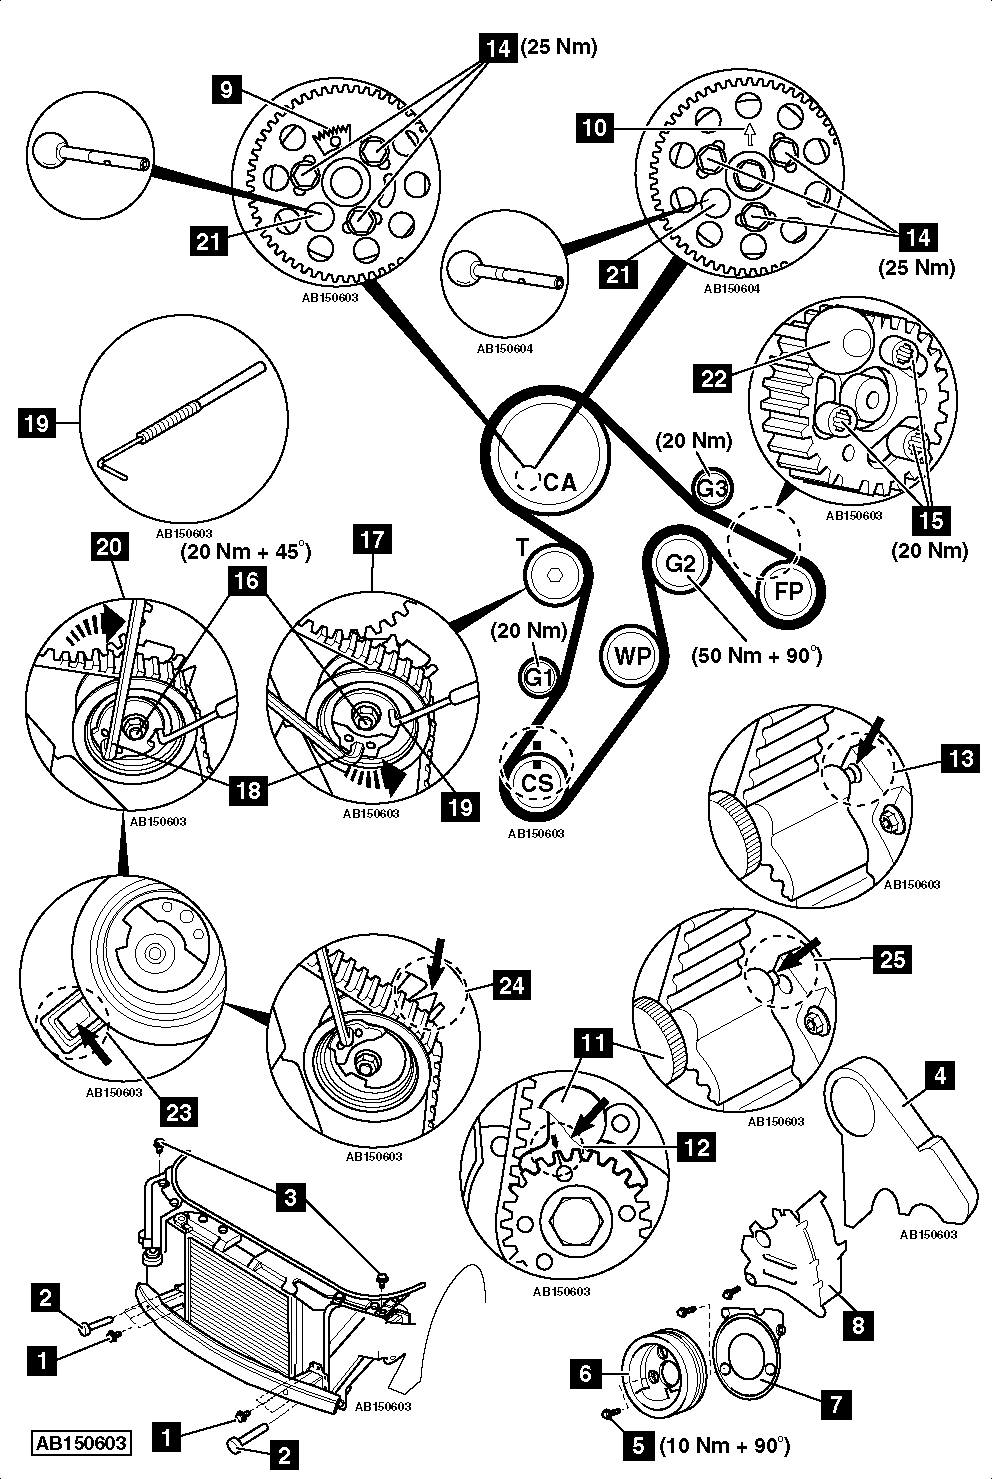 2001 Mercury Grand Serpentine Belt Diagram in addition Chrysler 300 Bank 2 O2 Sensor Location in addition QaNzDl also Audi A4 Fuel Pump Replace further Hyundai Elantra 1 5 1993 2 Specs And Images. on 2008 vw jetta engine